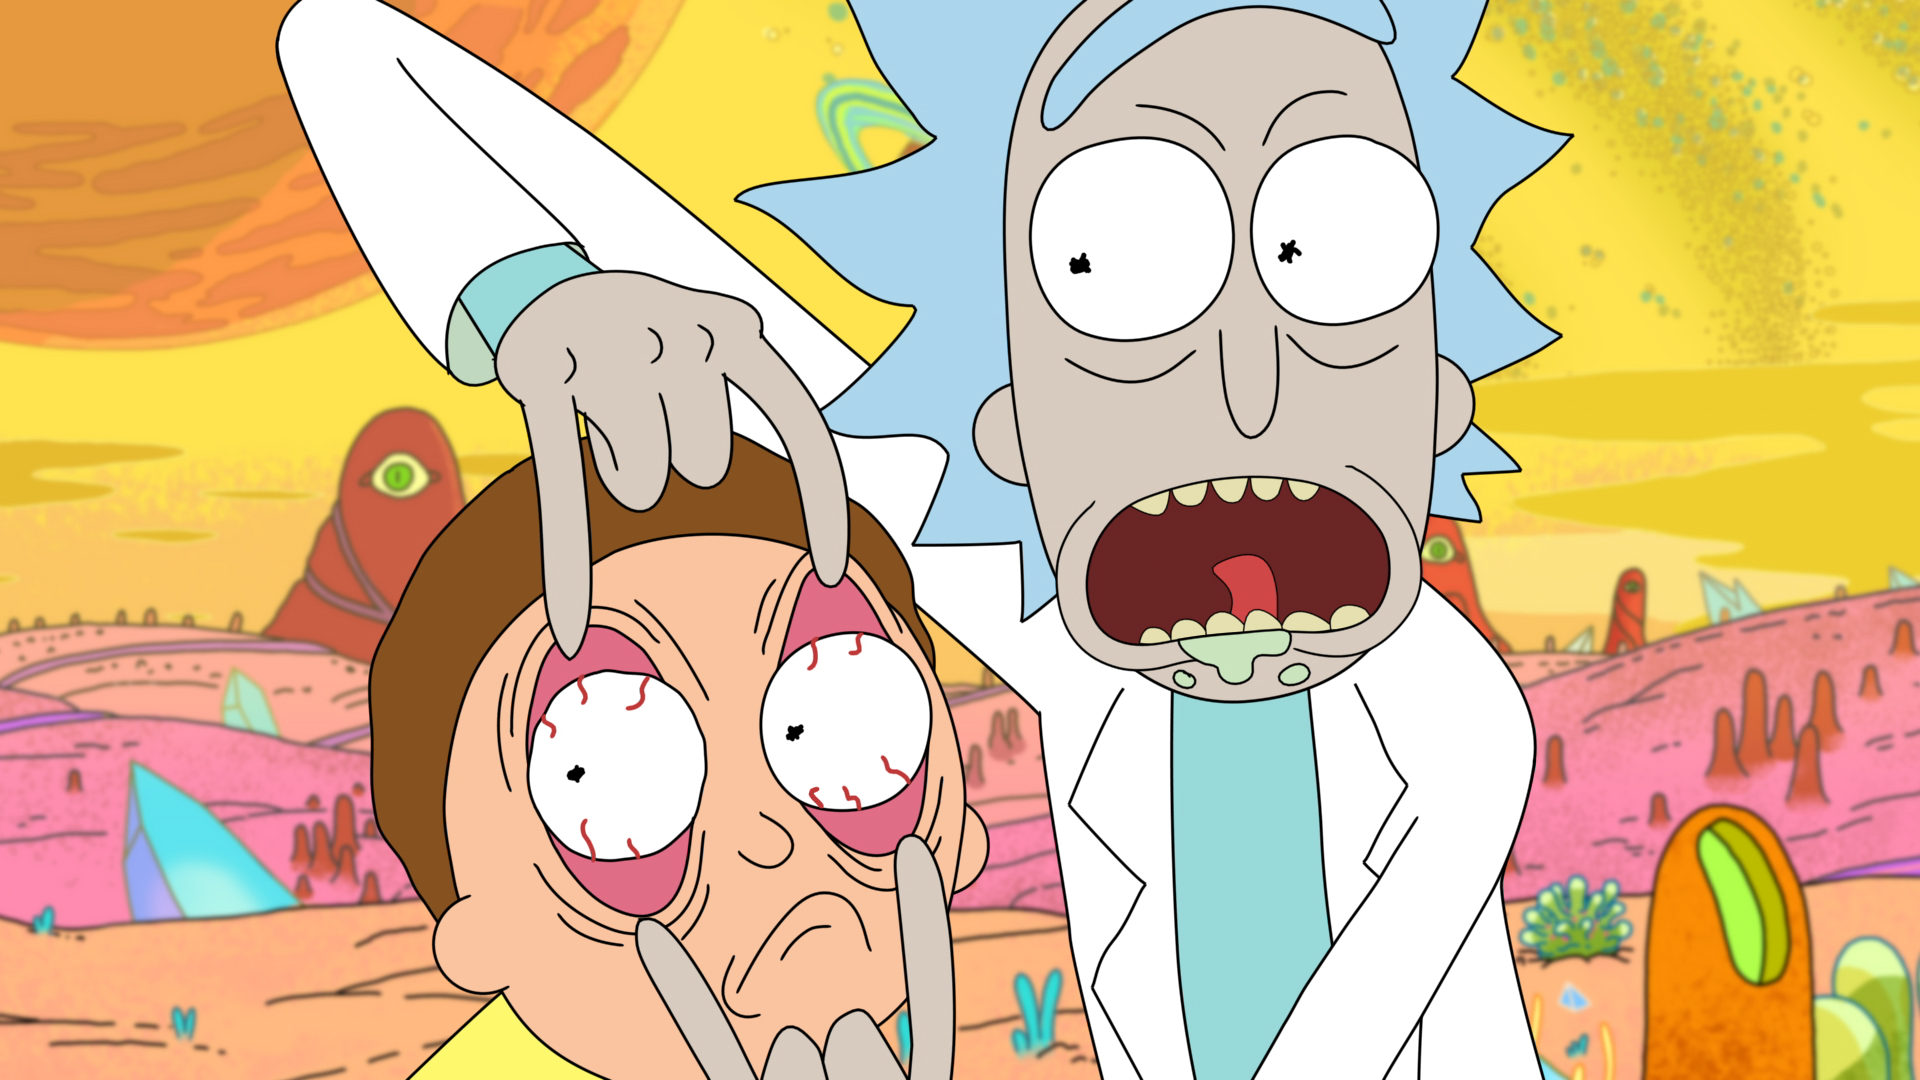 Rick and Morty Wallpaper HD 1920x1080